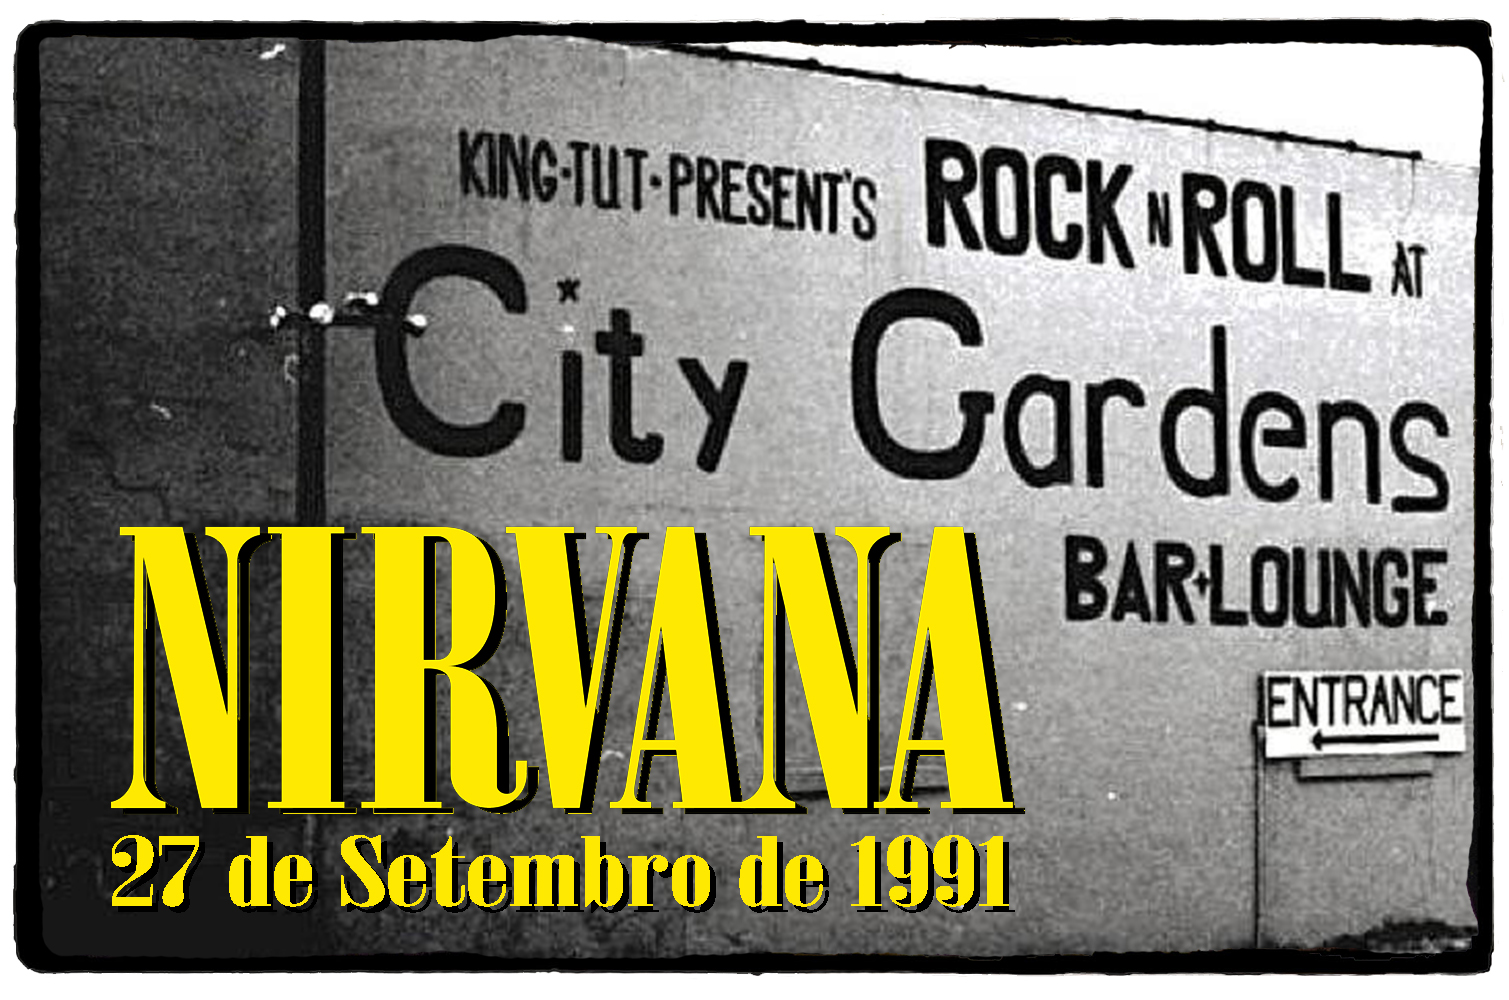 Nirvana no City Gardens – 27 de Setembro de 1991